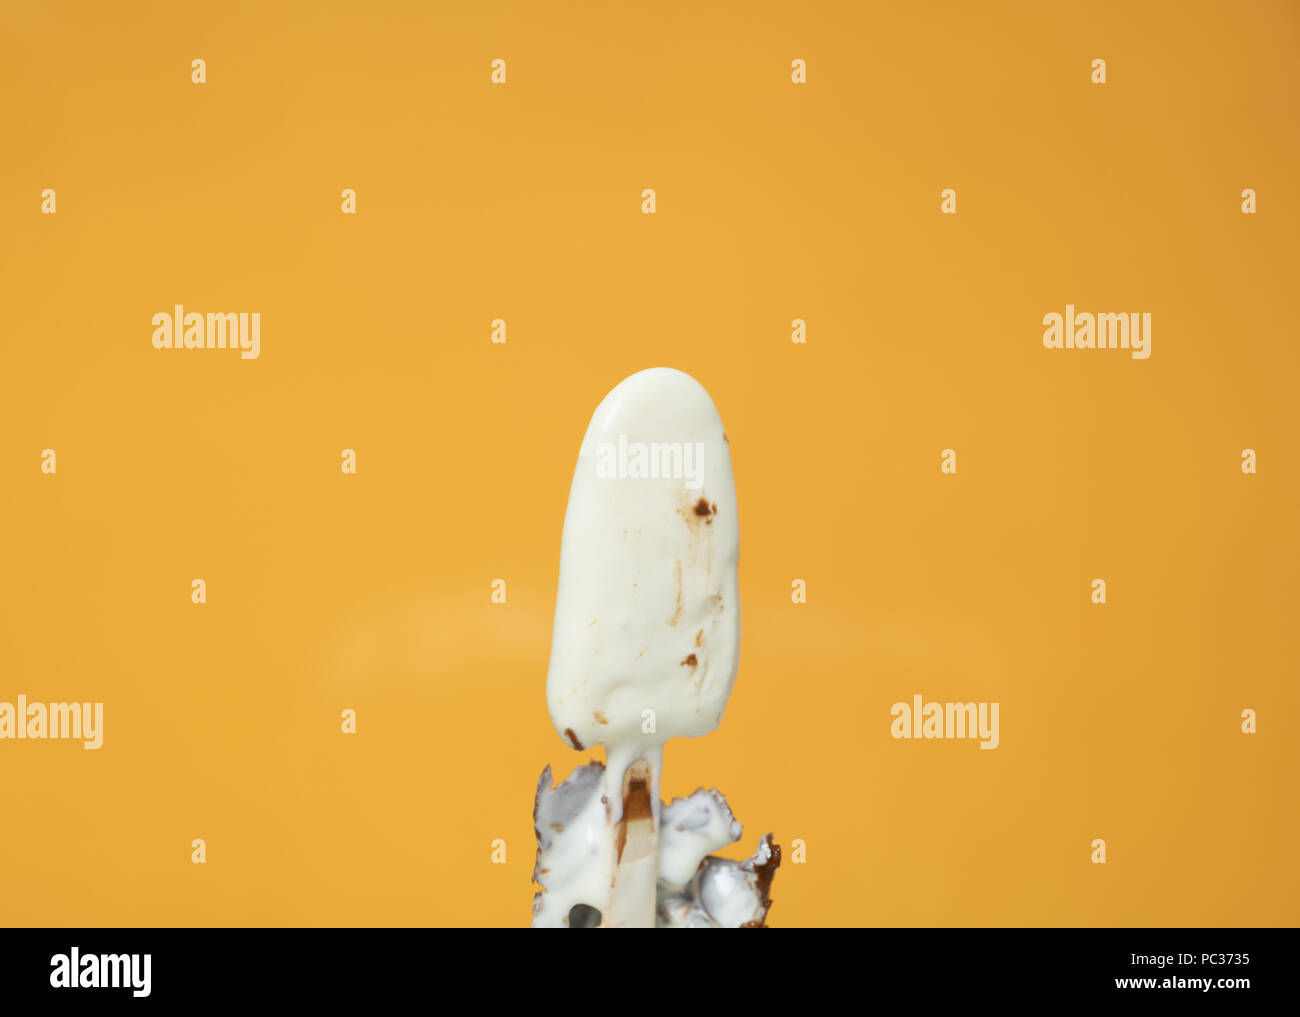 melting melted chocolate ice cream in summer hot weather - Stock Image